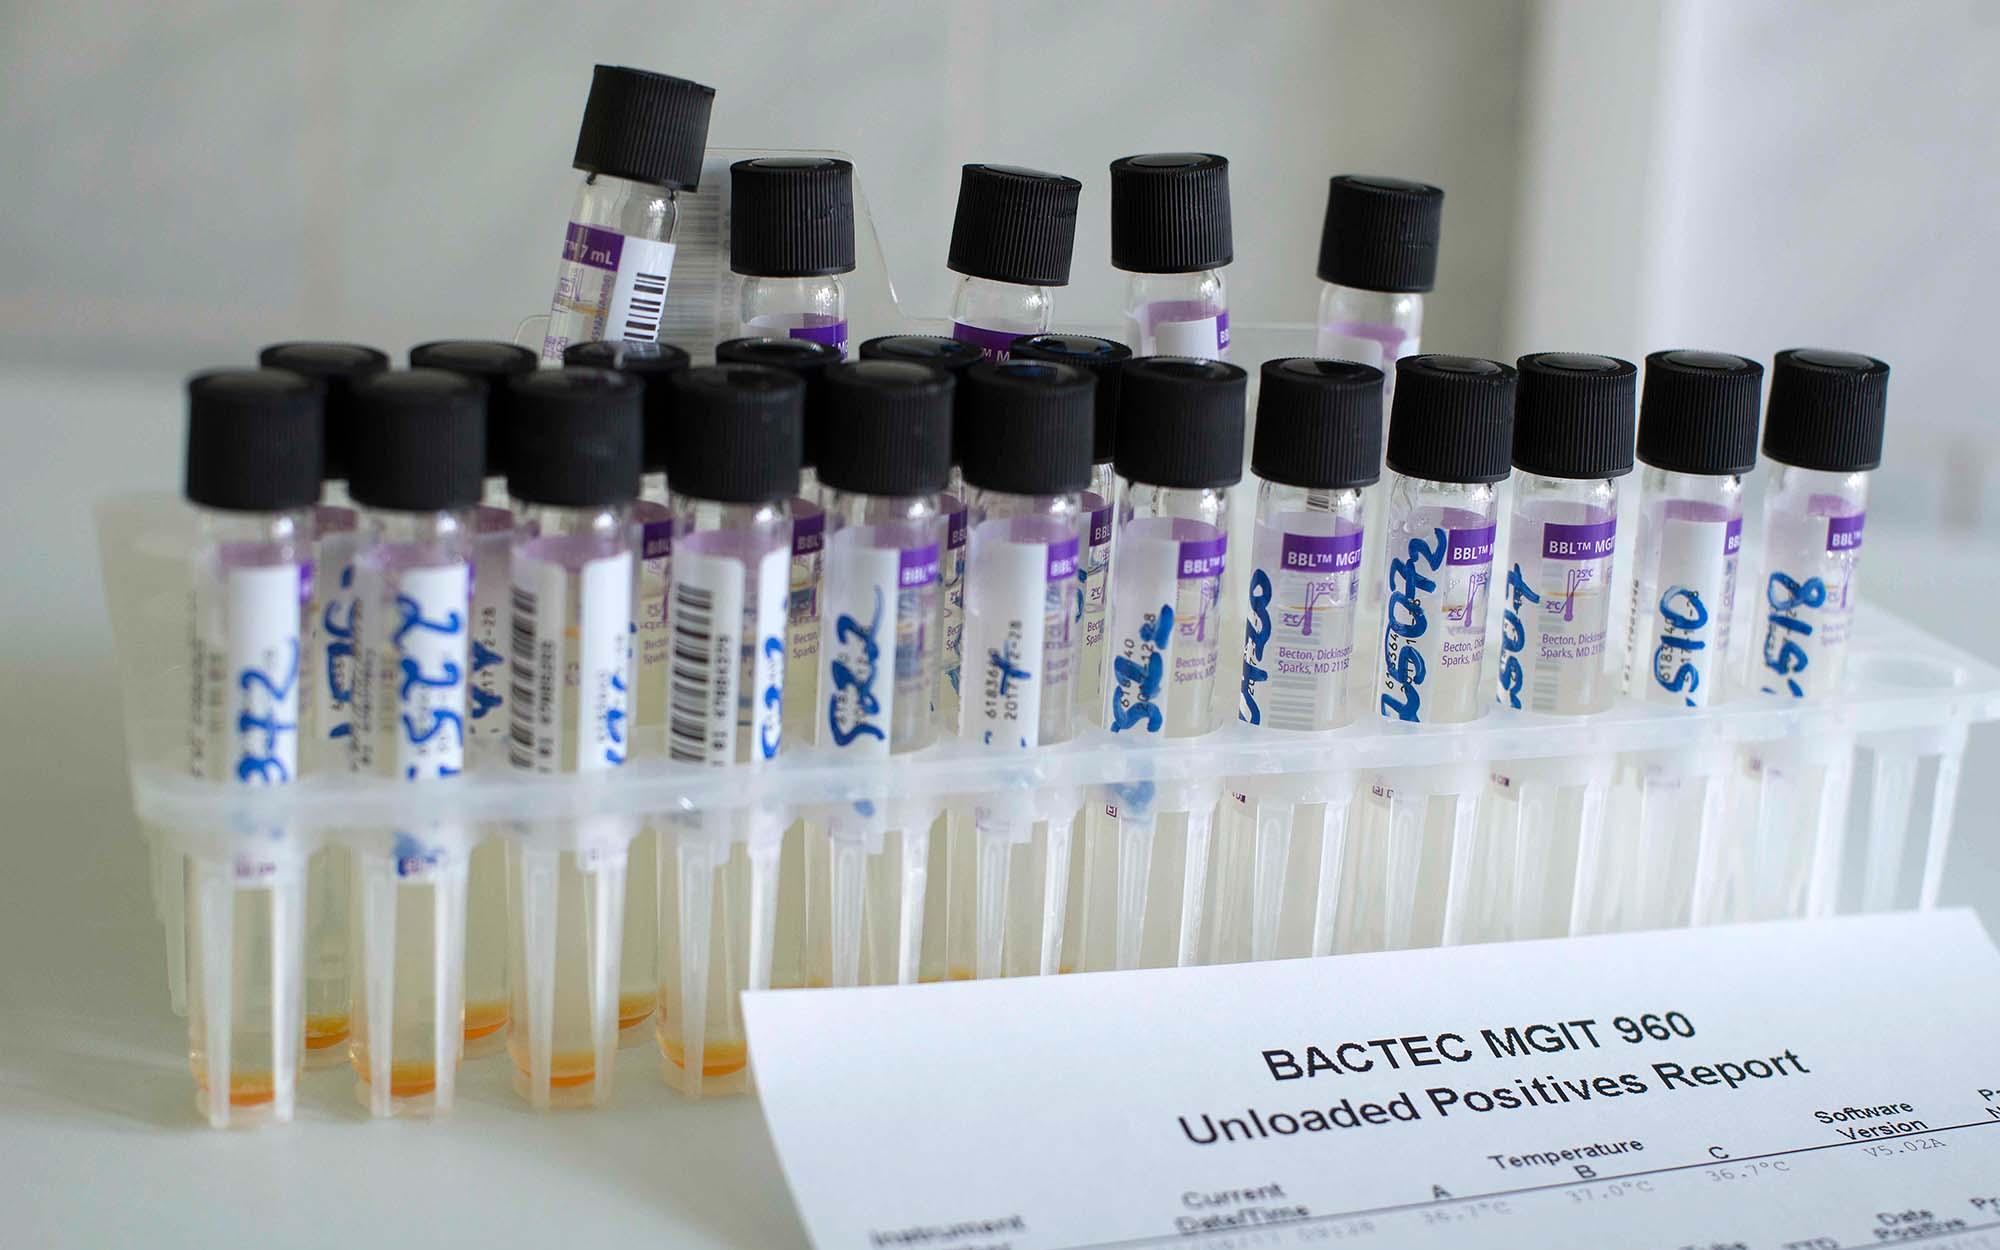 Samples from BACTEC test system used in TB diagnostics and follow-up.